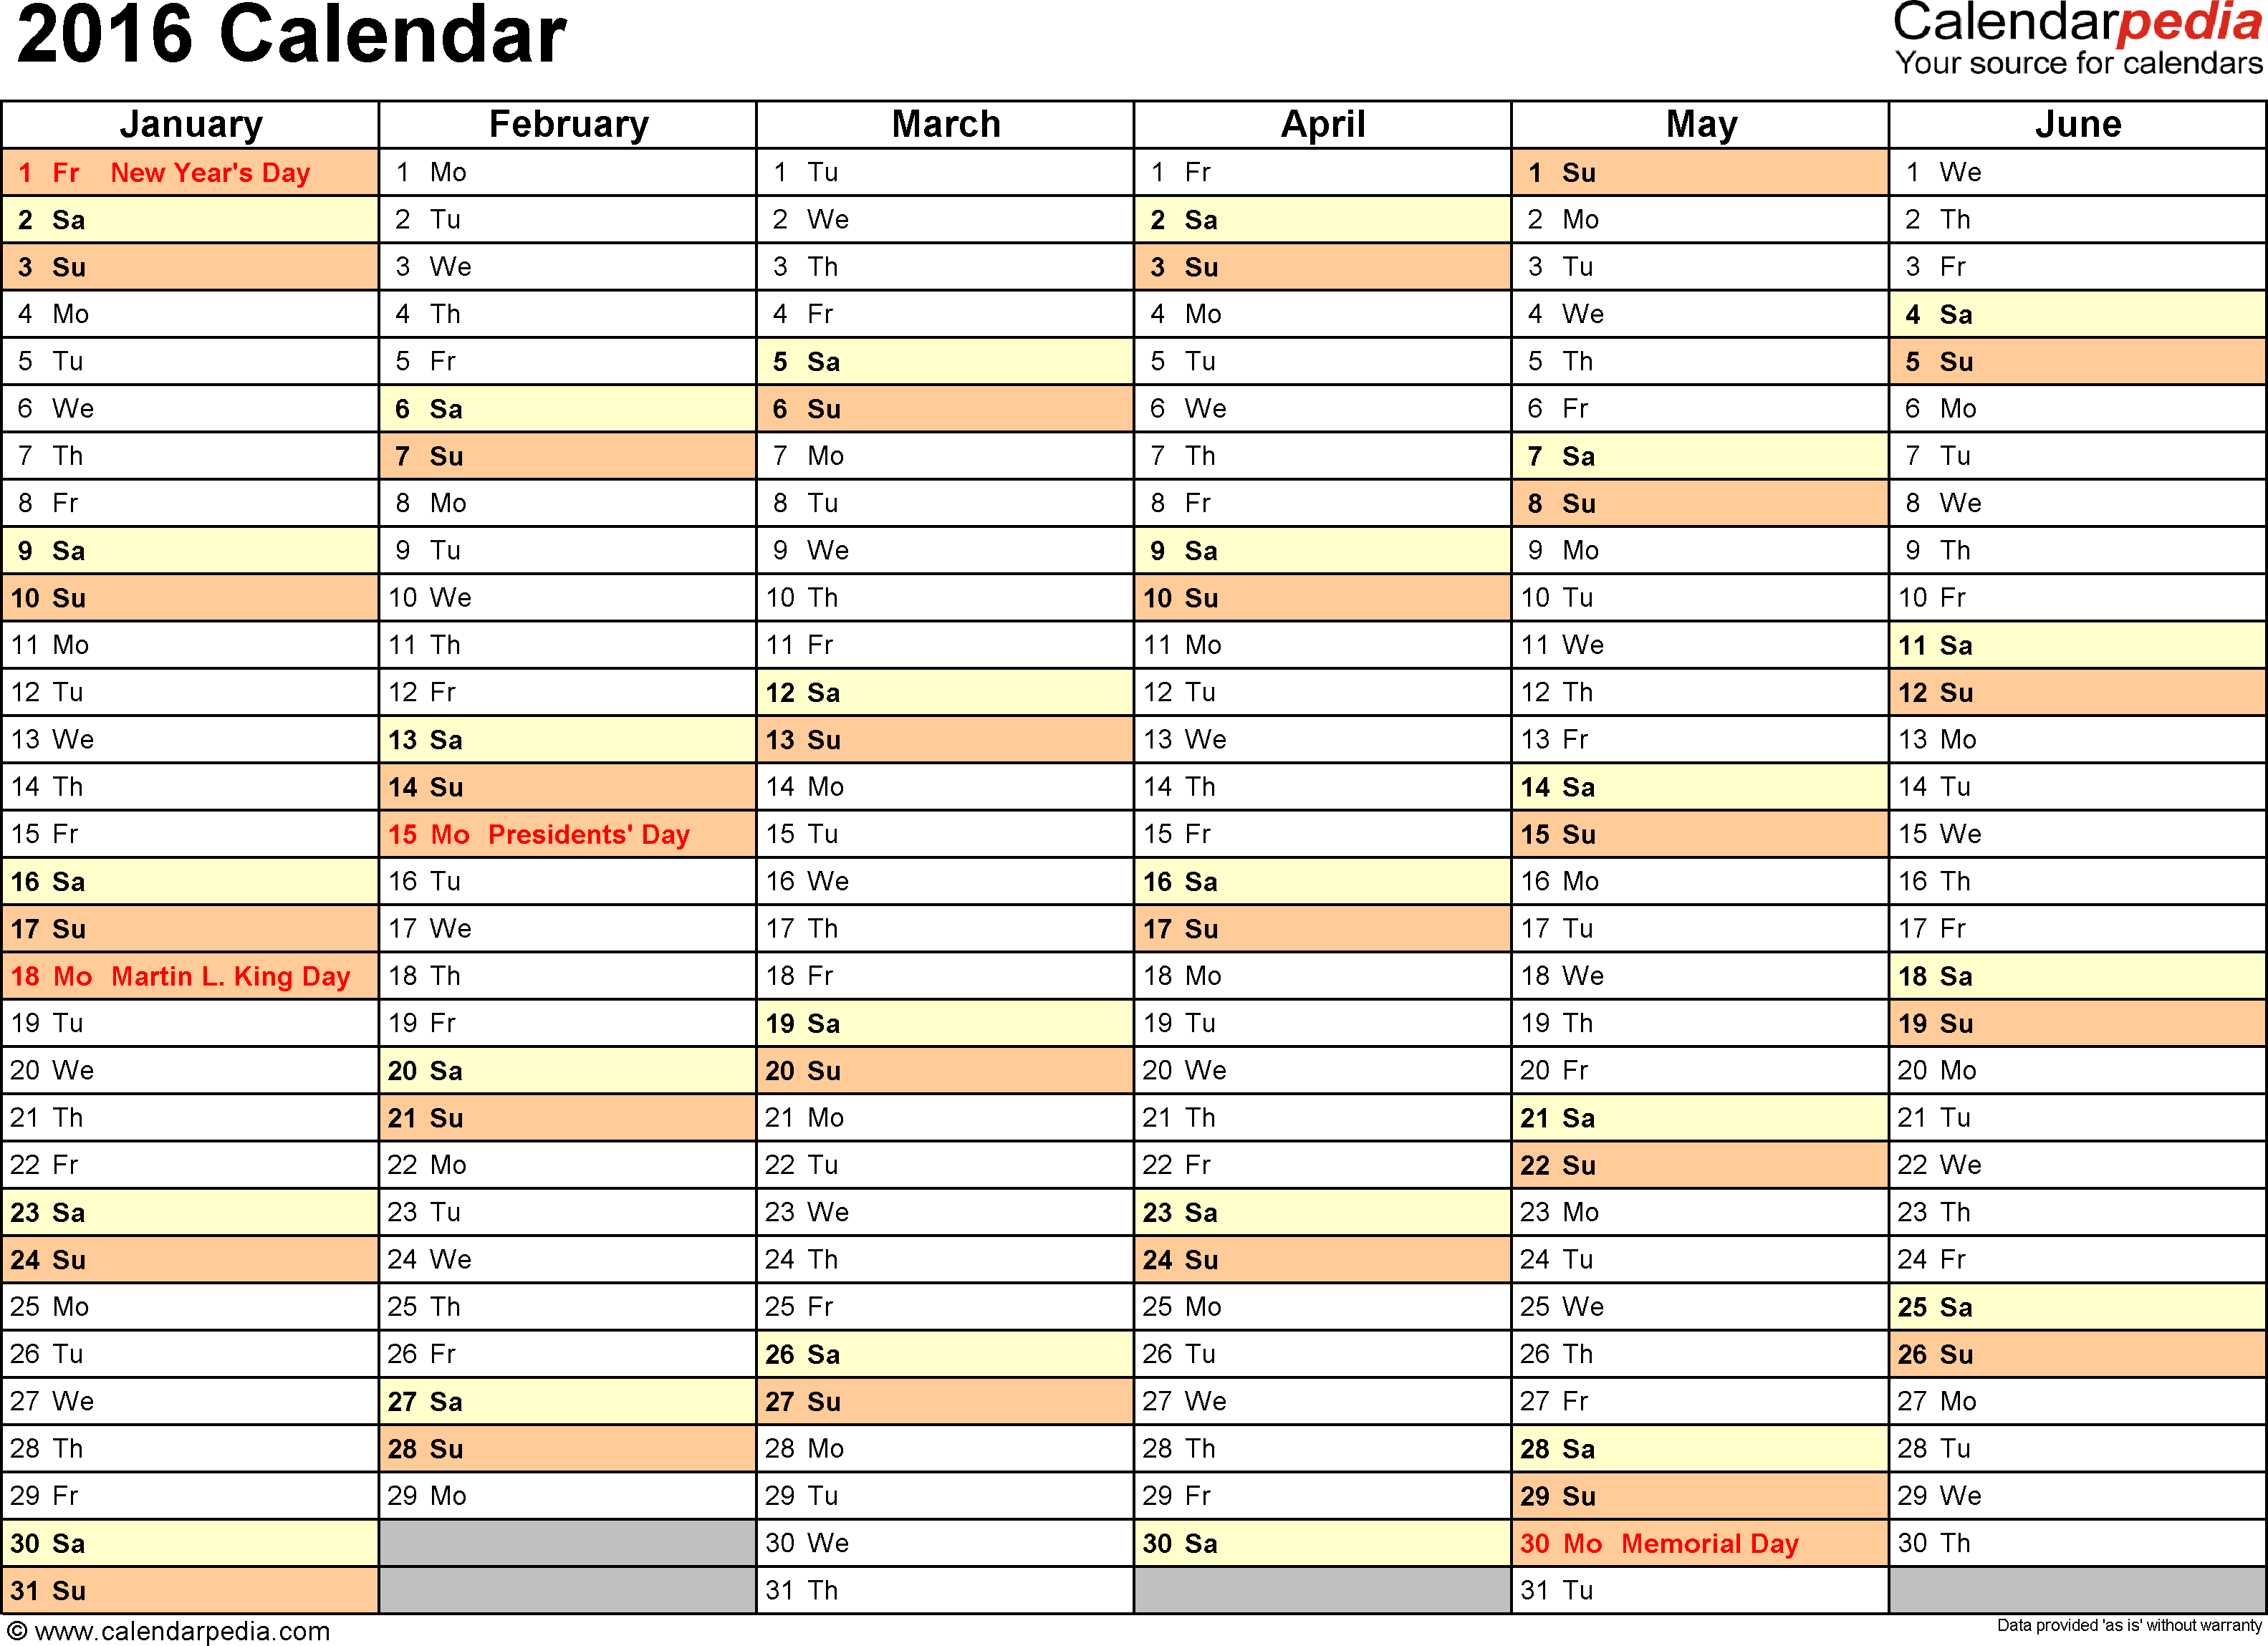 Ediblewildsus  Prepossessing  Calendar  Download  Free Printable Excel Templates Xls With Engaging Template   Calendar For Excel Months Horizontally  Pages Landscape Orientation With Delectable Operator In Excel Also How To Write If Statement In Excel In Addition Excel Urgent Care Katy And Printing Address Labels From Excel As Well As Generate Random Numbers In Excel Additionally Excel Drop Down List  From Calendarpediacom With Ediblewildsus  Engaging  Calendar  Download  Free Printable Excel Templates Xls With Delectable Template   Calendar For Excel Months Horizontally  Pages Landscape Orientation And Prepossessing Operator In Excel Also How To Write If Statement In Excel In Addition Excel Urgent Care Katy From Calendarpediacom